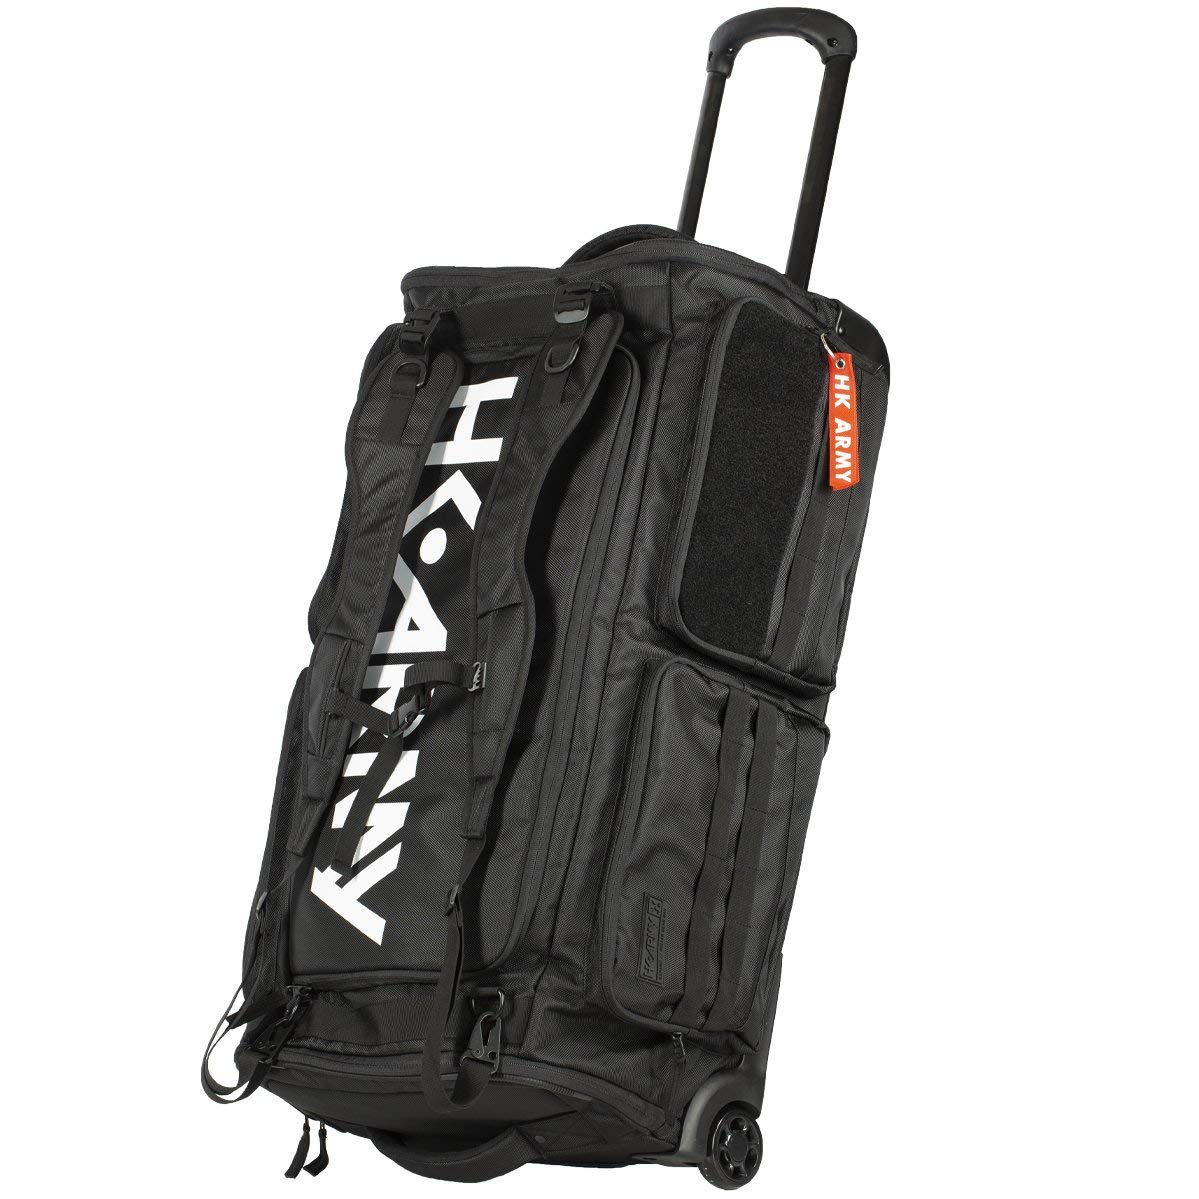 HK Army Expand 75L - Roller Gear Bag - Stealth by HK Army